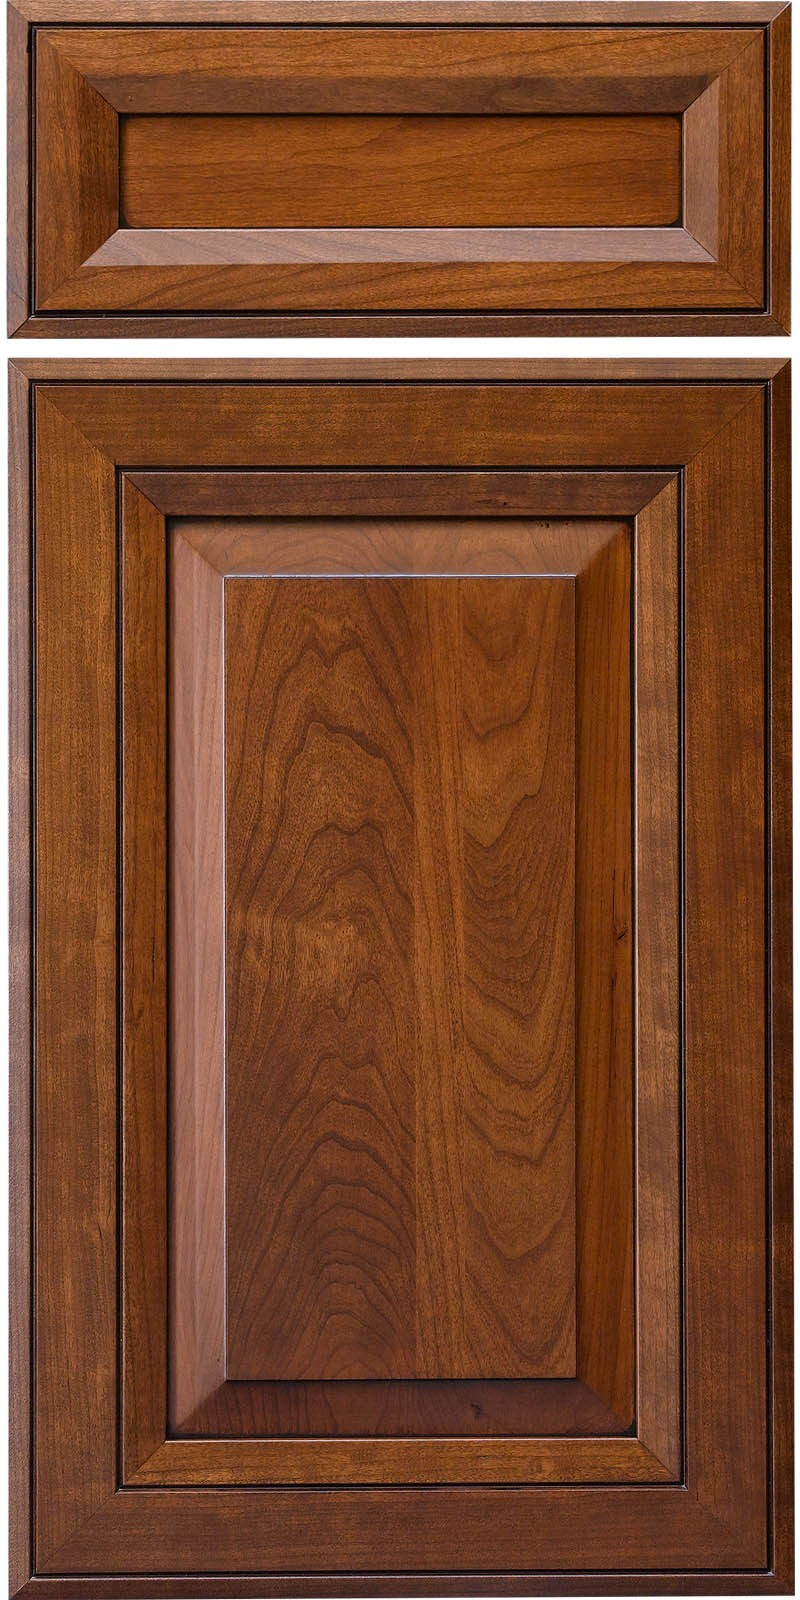 Prestige European Design Styles Cabinet Doors Drawer Fronts Products